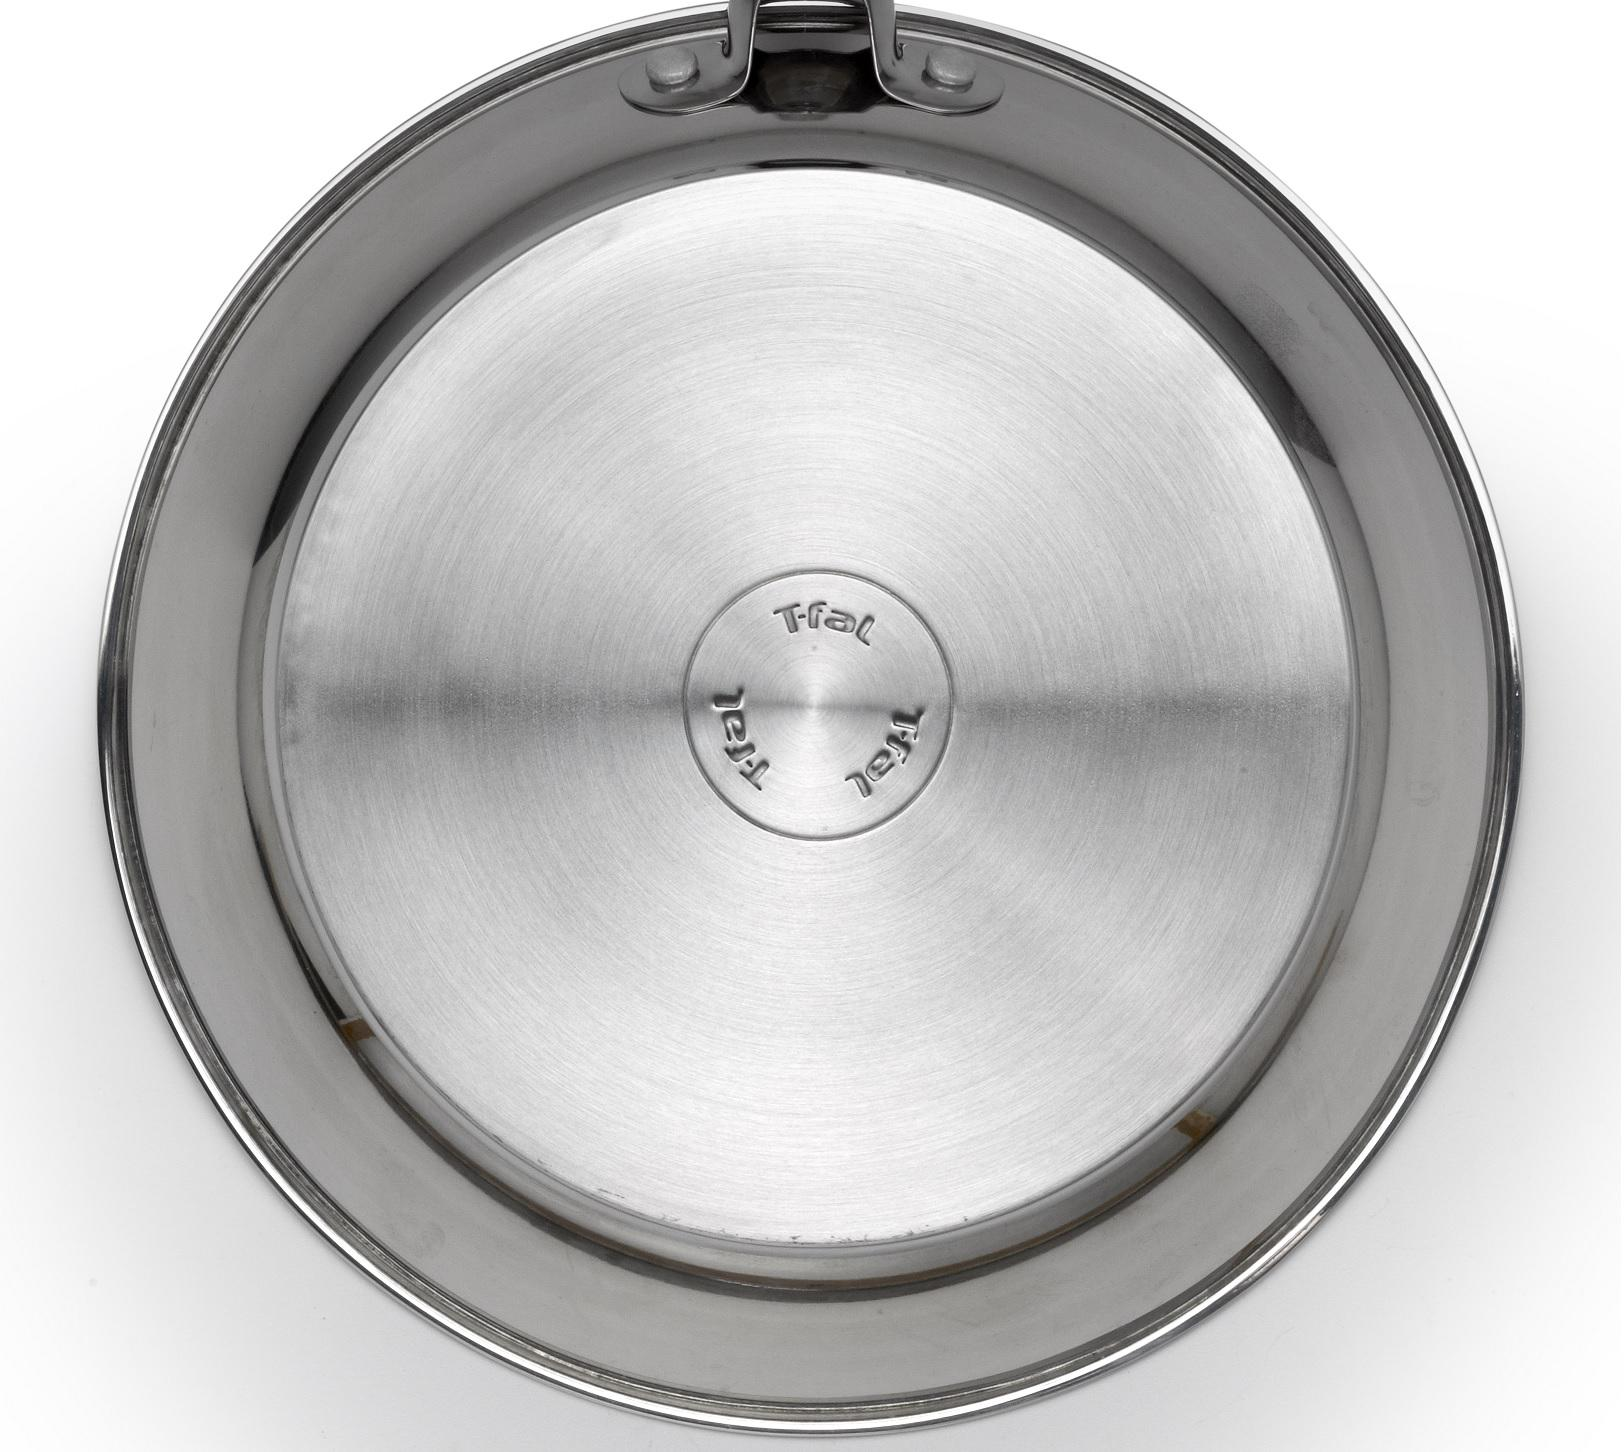 T Fal E759se Performa Pro Stainless Steel Dishwasher Safe